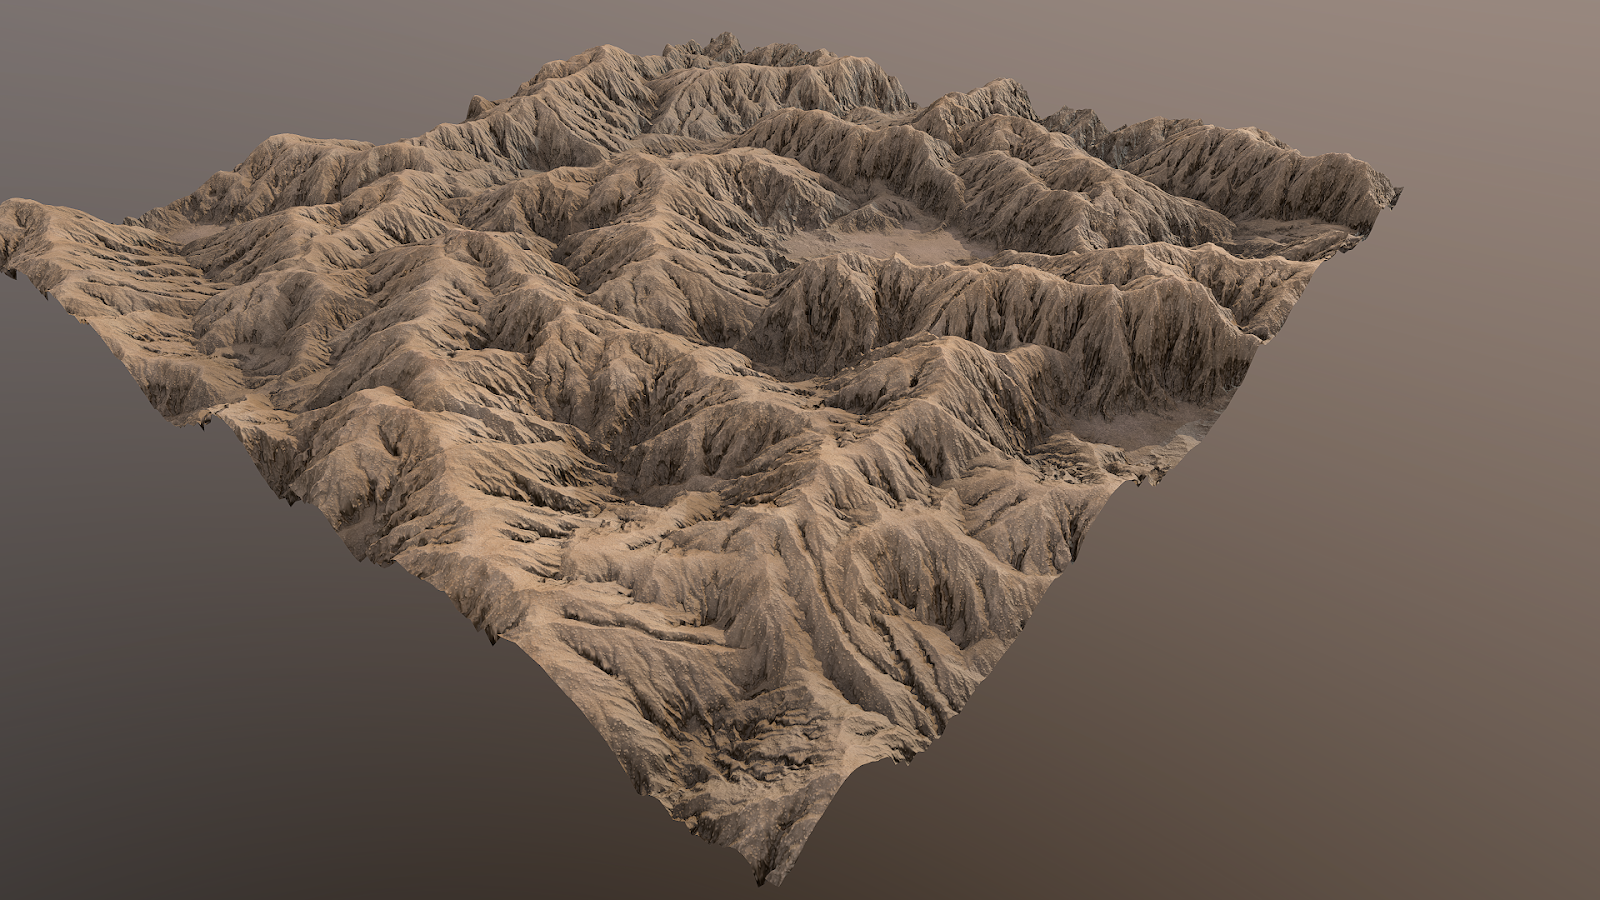 Desert mountains material PBR tessellation unreal4 unity monochrome light setup Igor Novik 3d artist